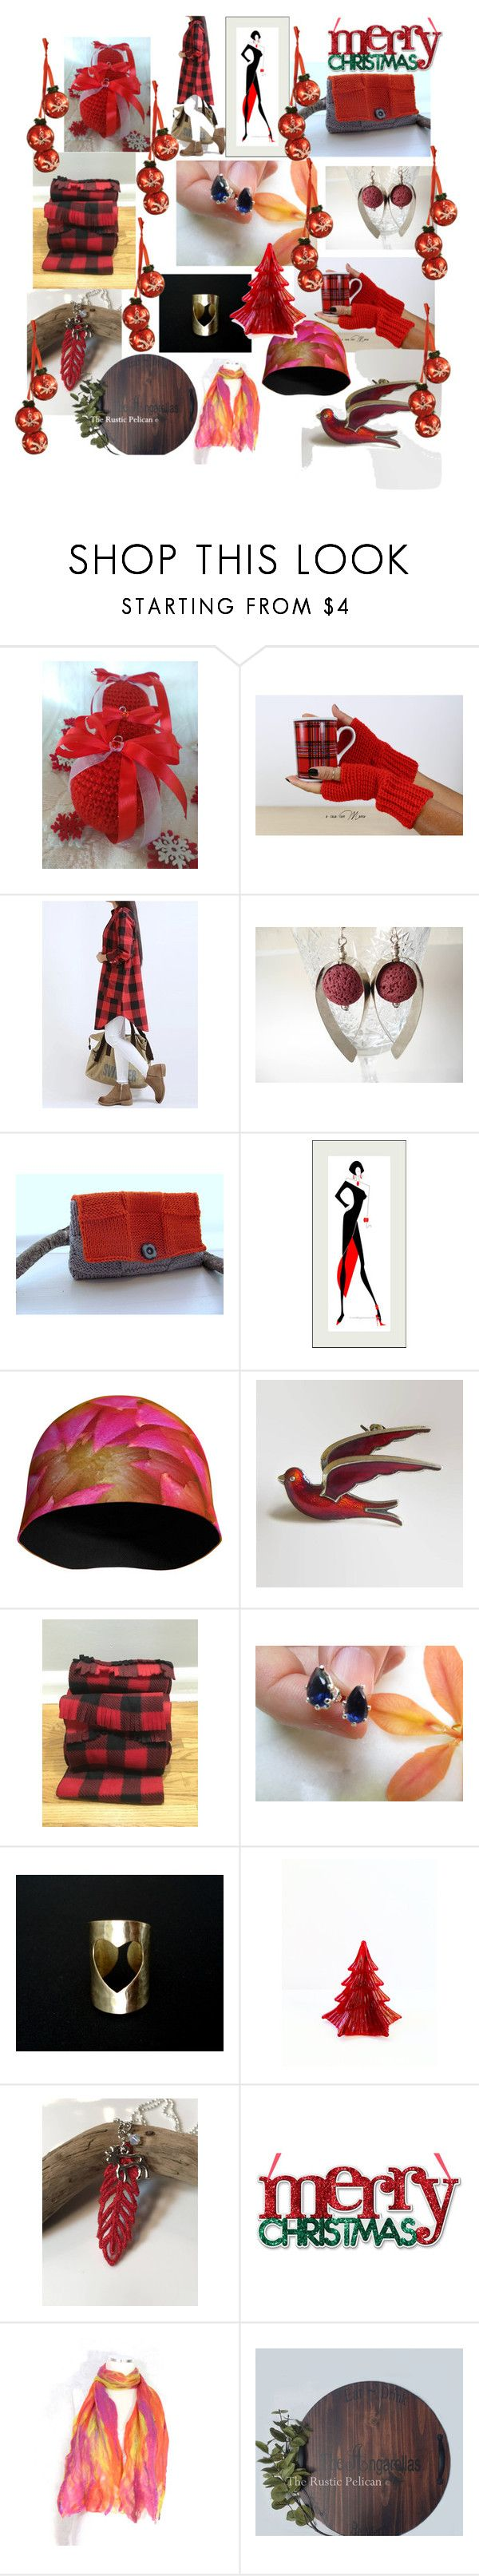 Christmas Gifts by anna-recycle on Polyvore featuring modern, rustic and vintage